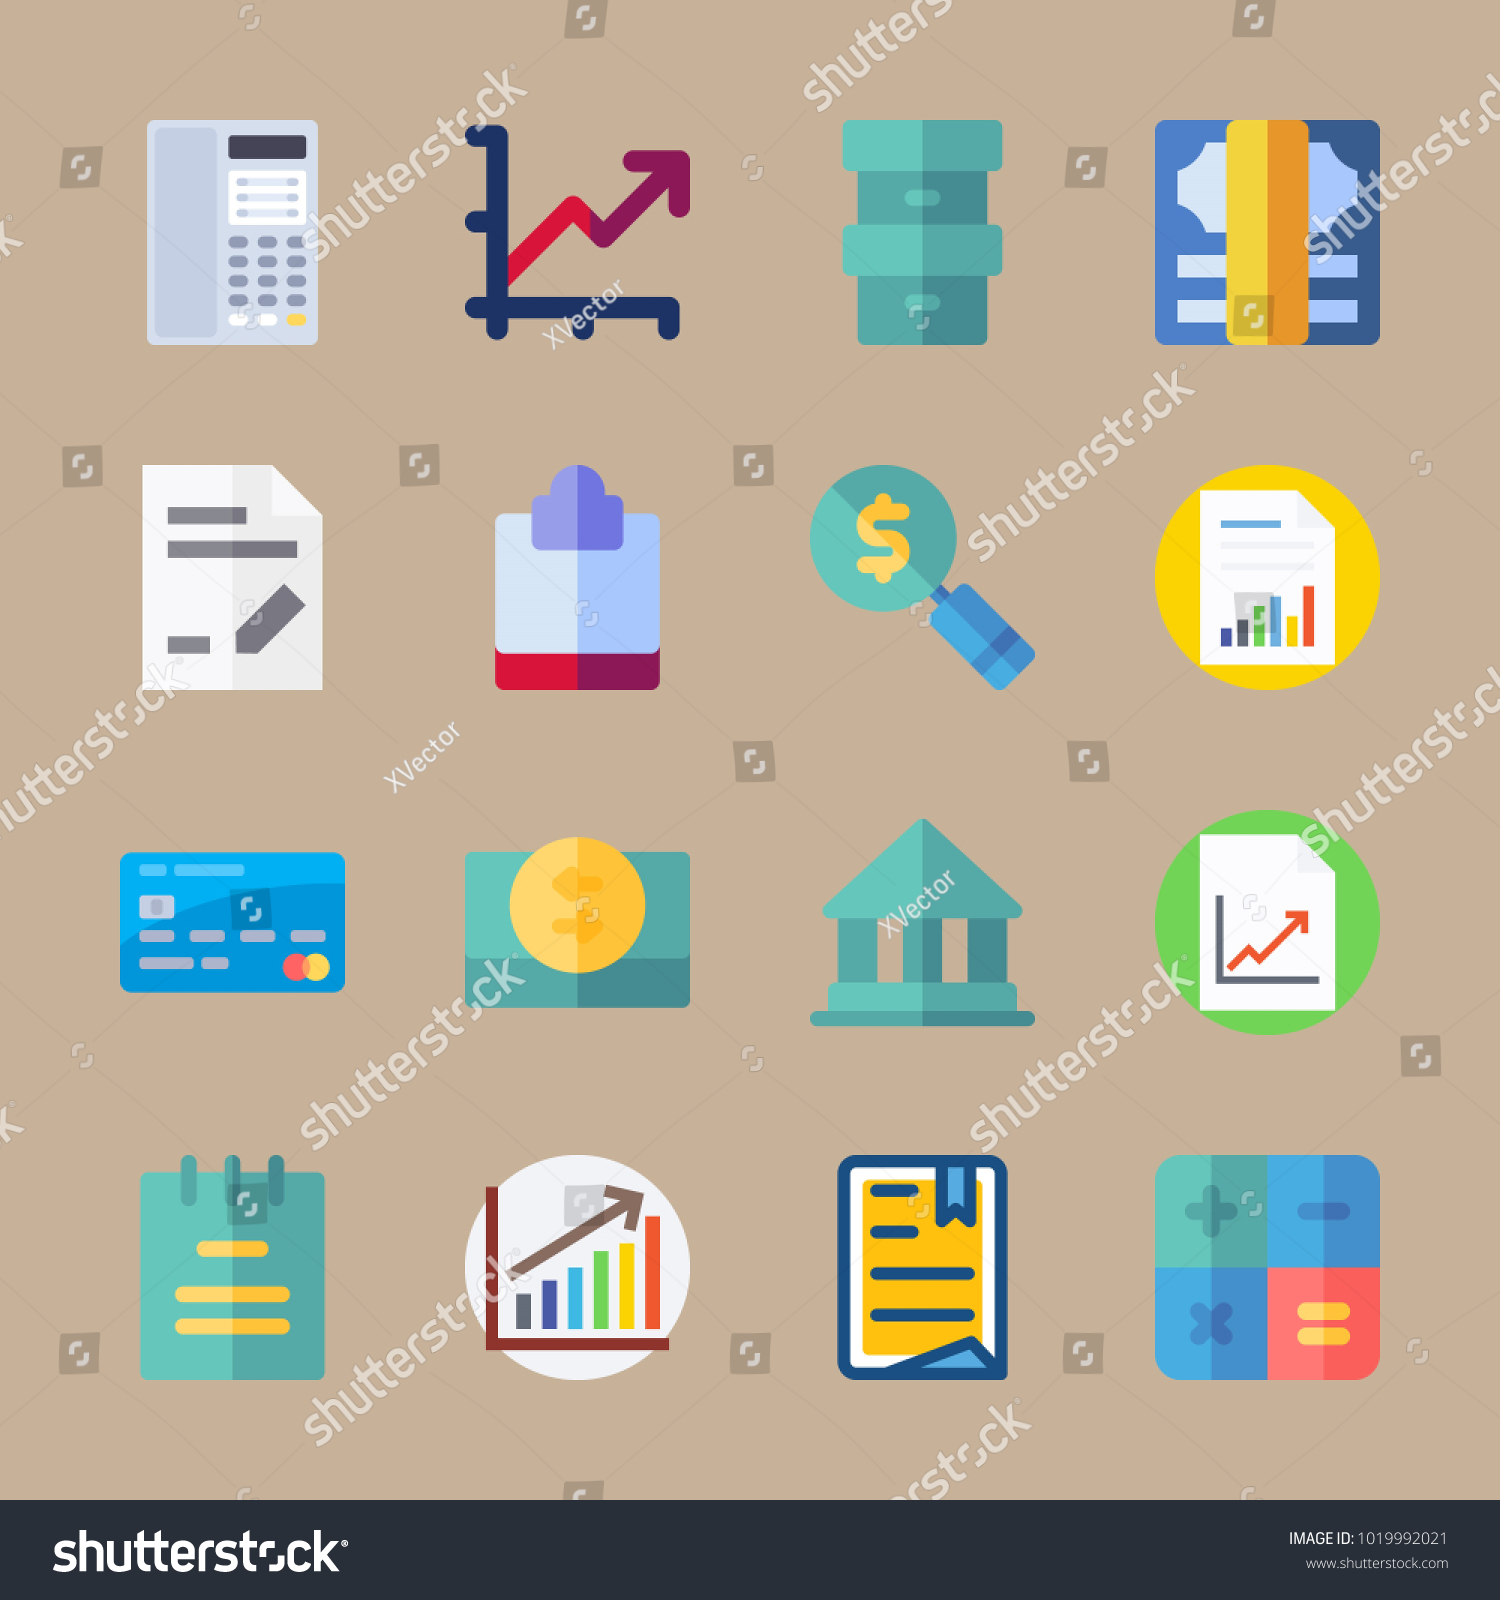 Icons banking paper box bar chart stock vector 1019992021 shutterstock icons banking with paper box bar chart consrtuction and calculator ccuart Gallery